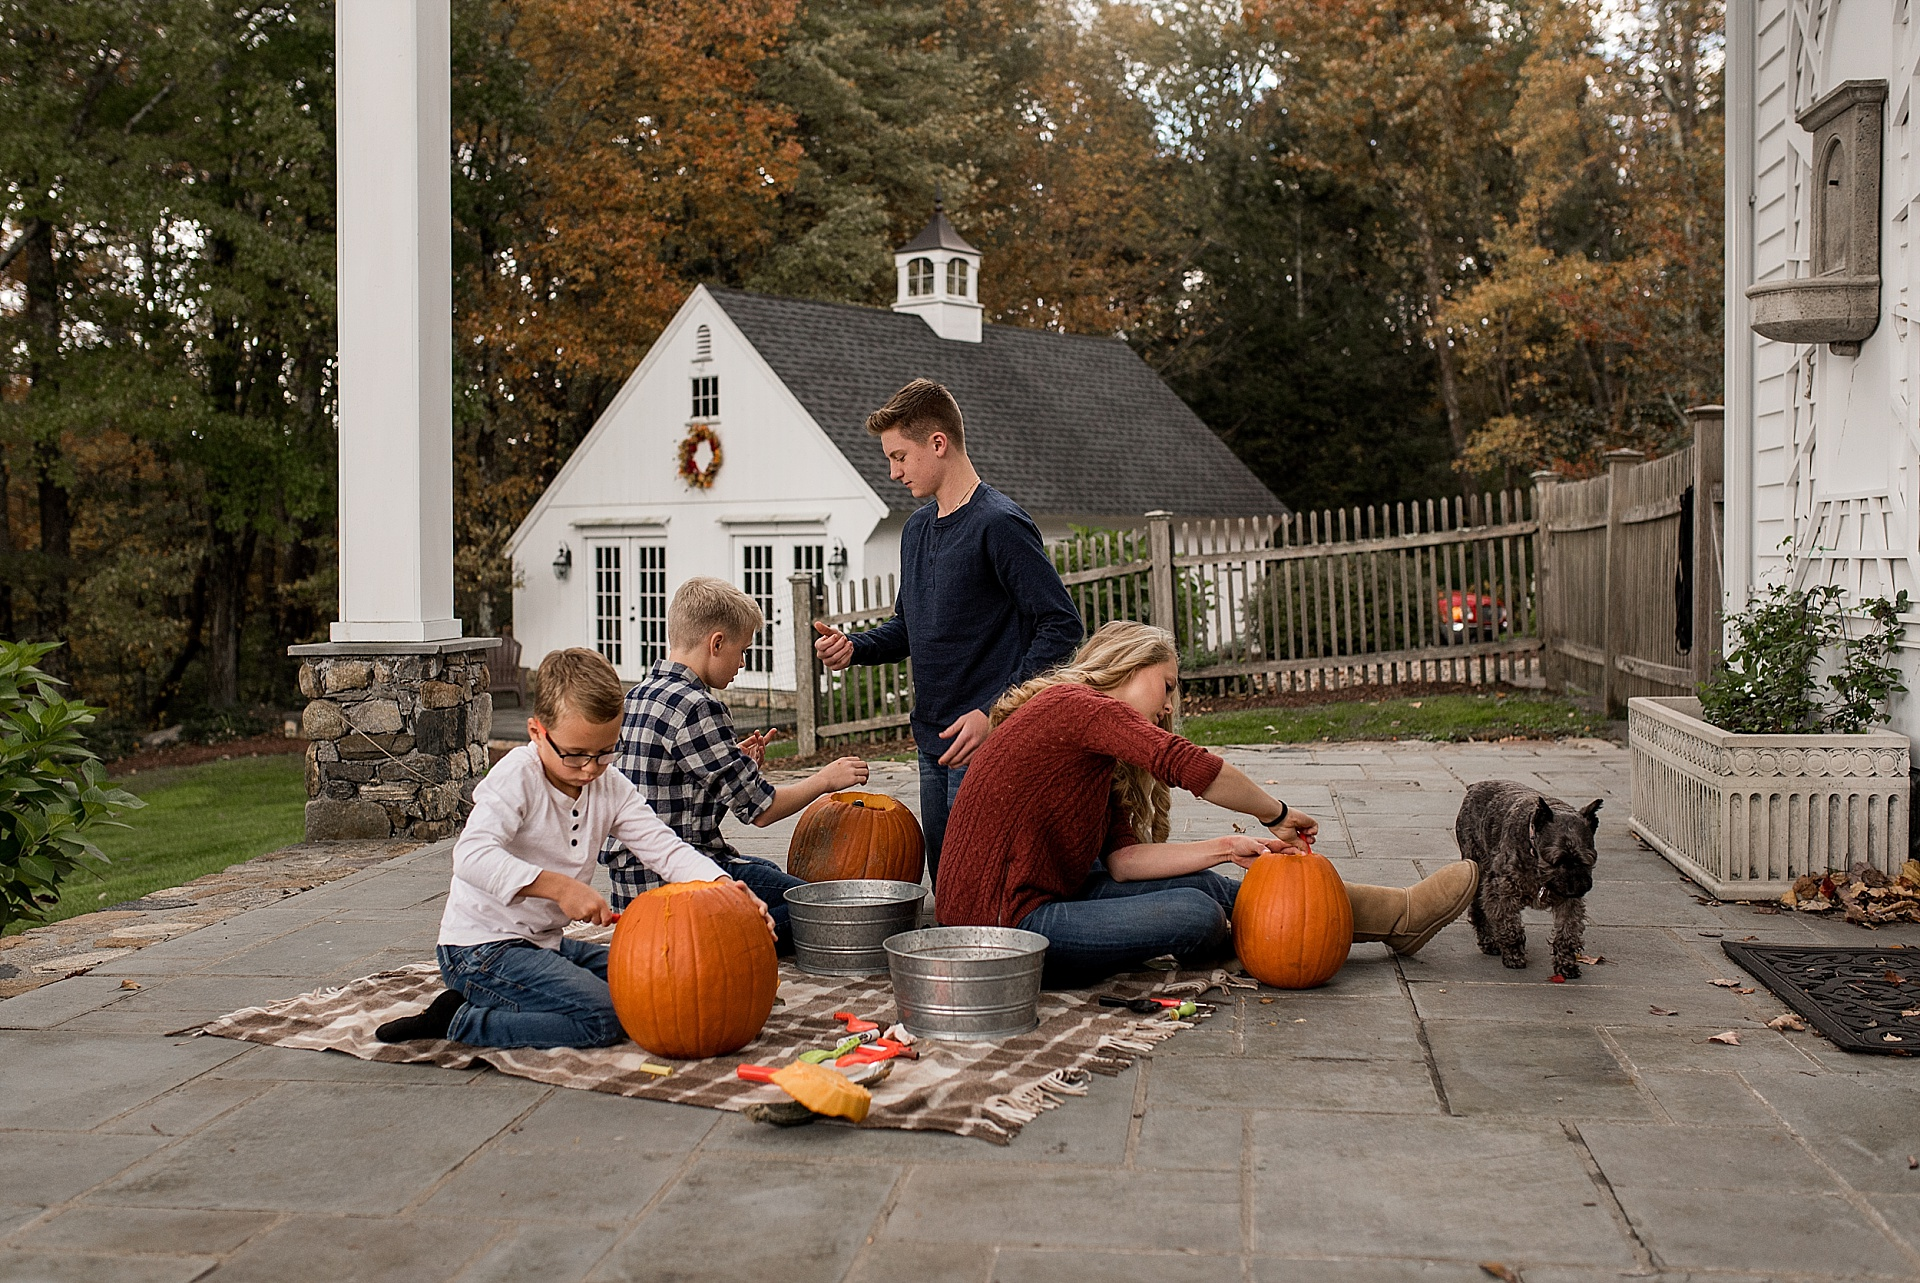 connecticut children carving pumpkins on their back pourch. litchfield county family photographer.